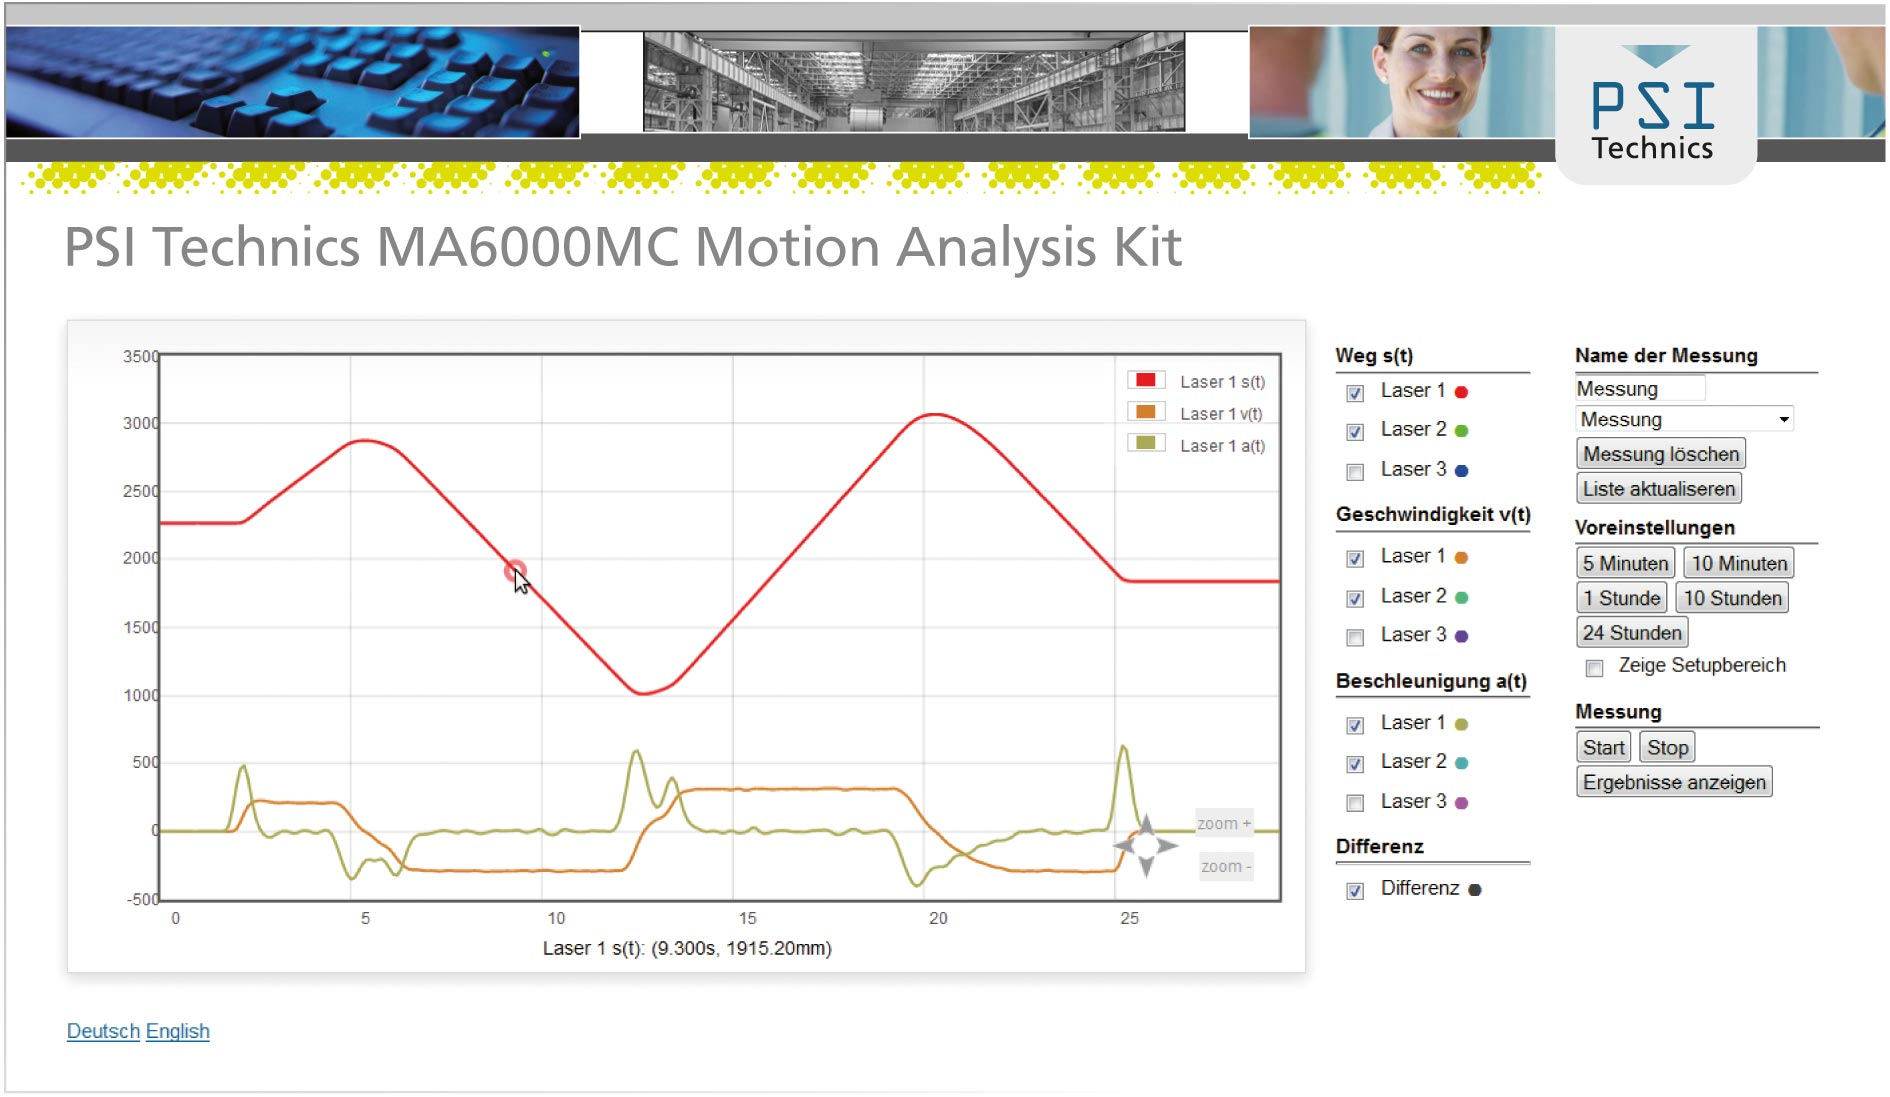 Komfortable Bedienung des Analyse-Tools - das Webinterface des MA6000MC Motion Analysis Kit